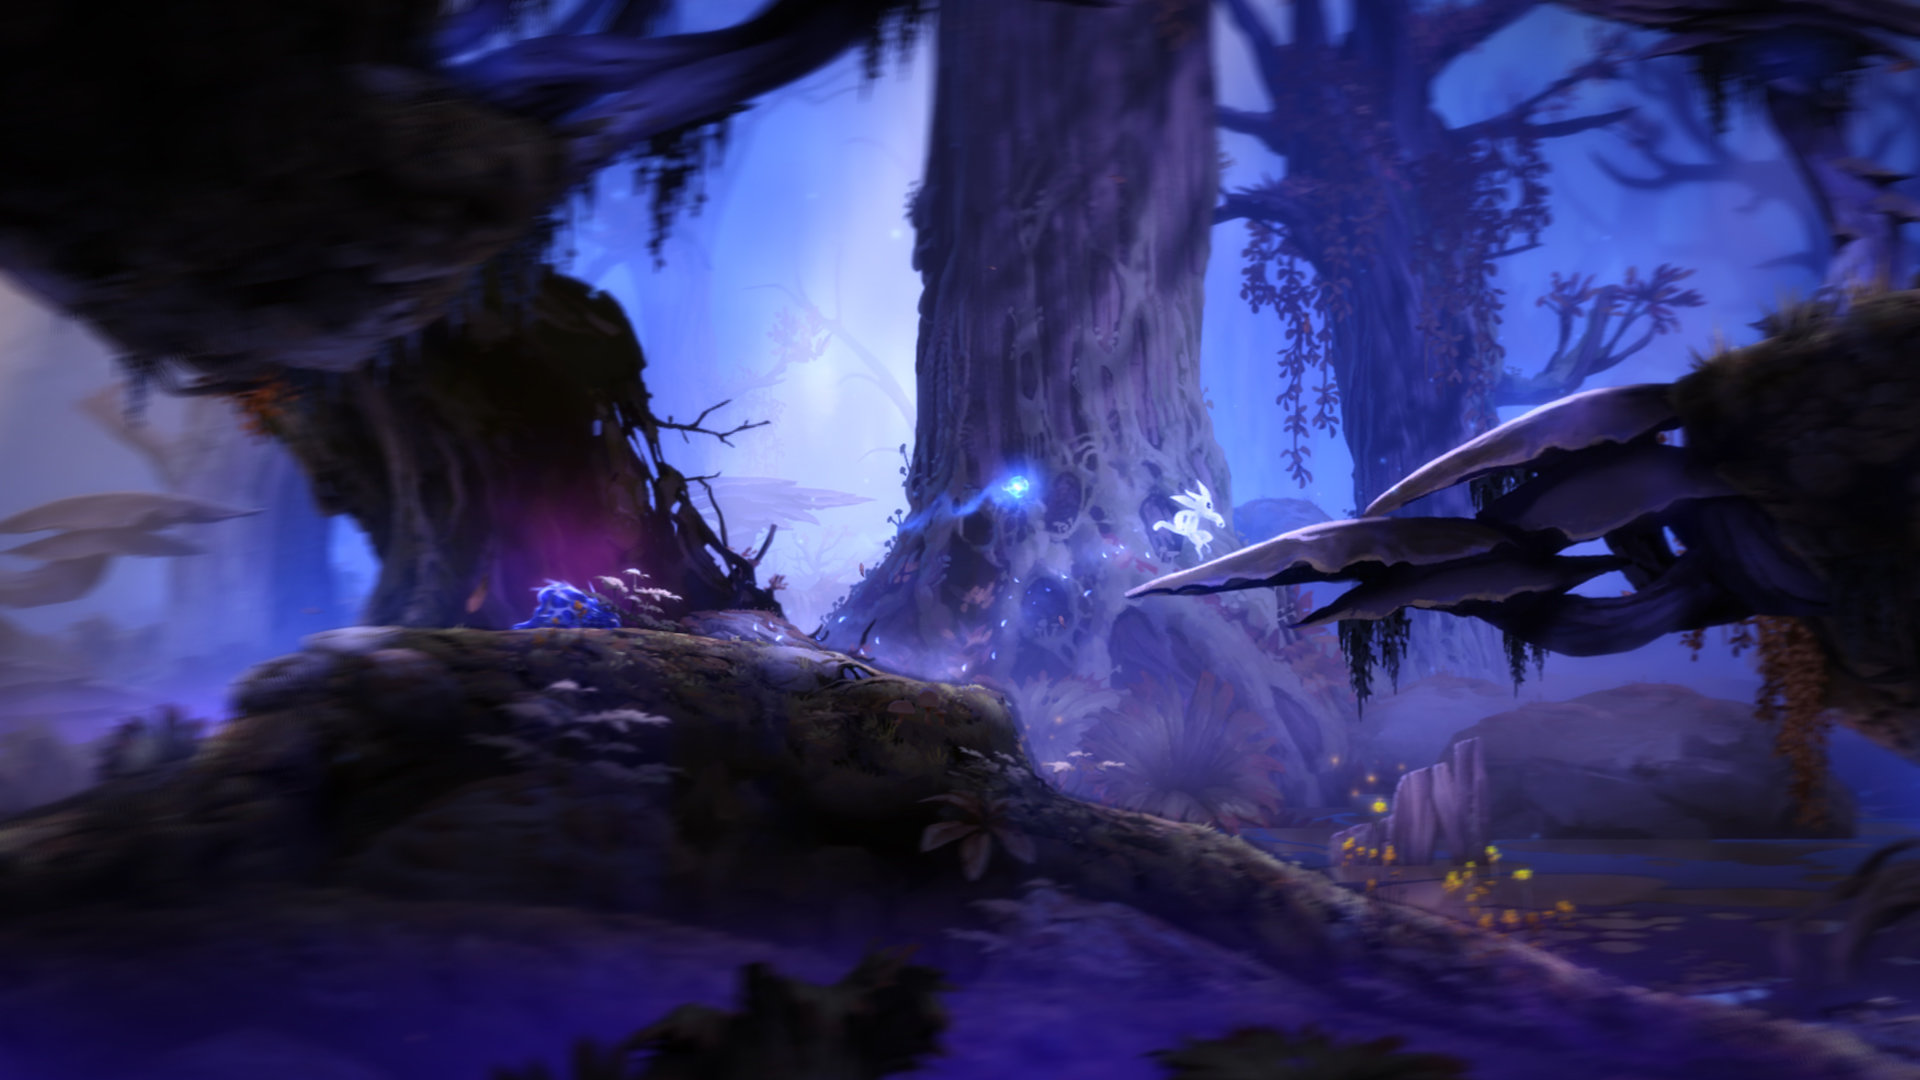 Ori And The Blind Forest Wallpapers 1920x1080 Full Hd 1080p